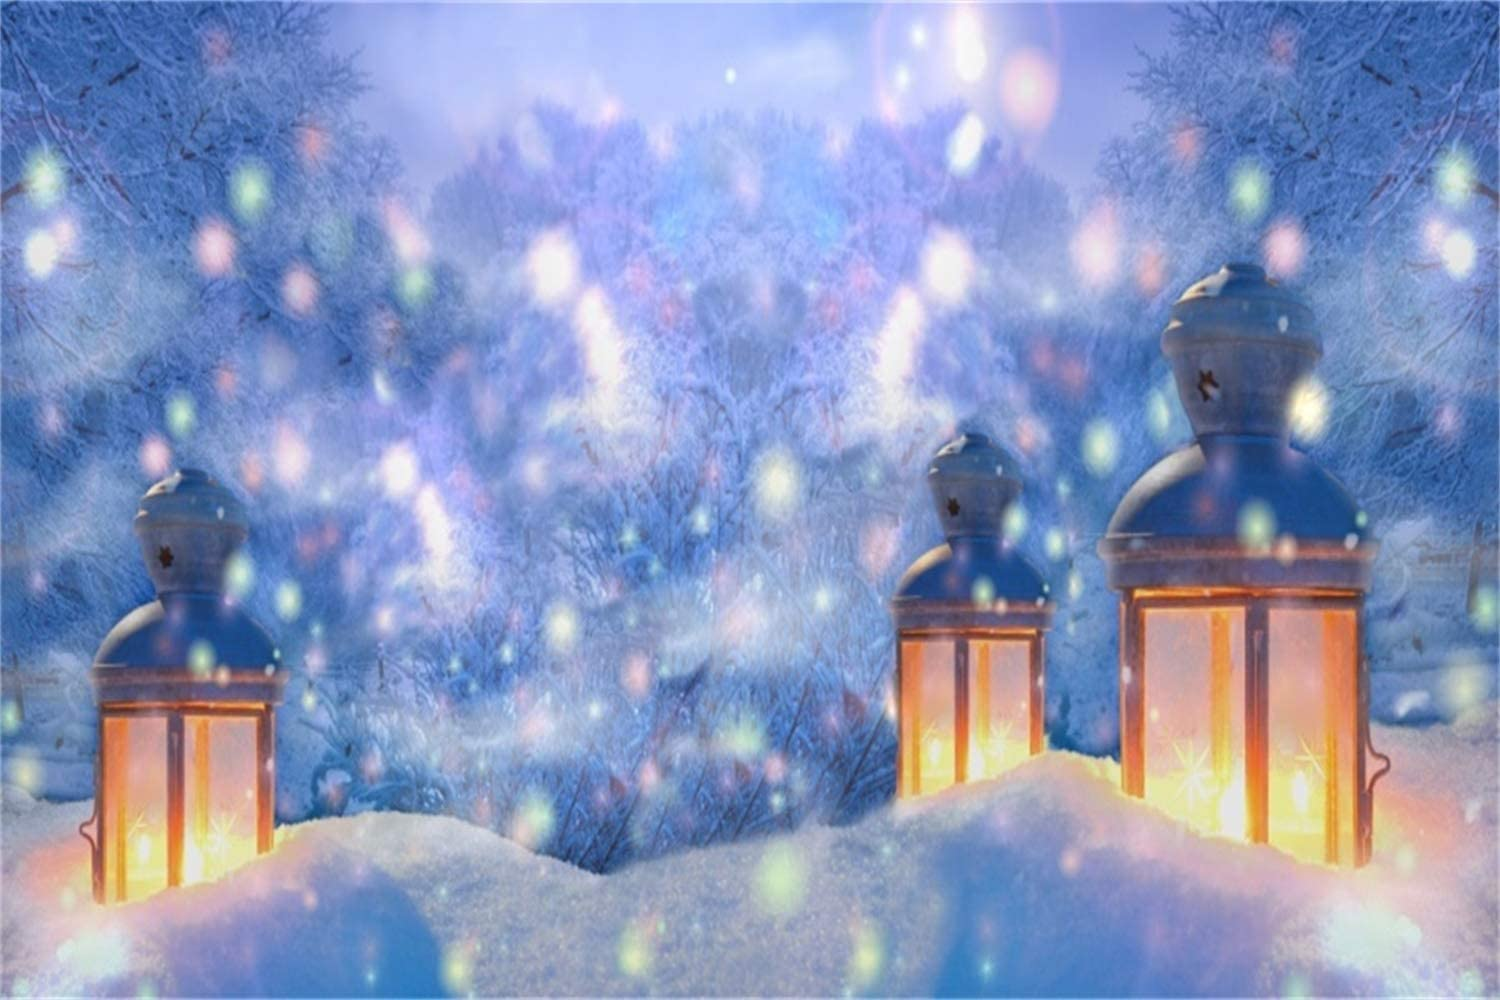 10x6.5ft Christmas New Year Backdrop Polyester Dreamlike Snowy Forest Frosty Pine Trees Old Lighting Lanterns Snowfield Flying Snow Light Spots Background Xmas New Years Eve Party Banner Studio